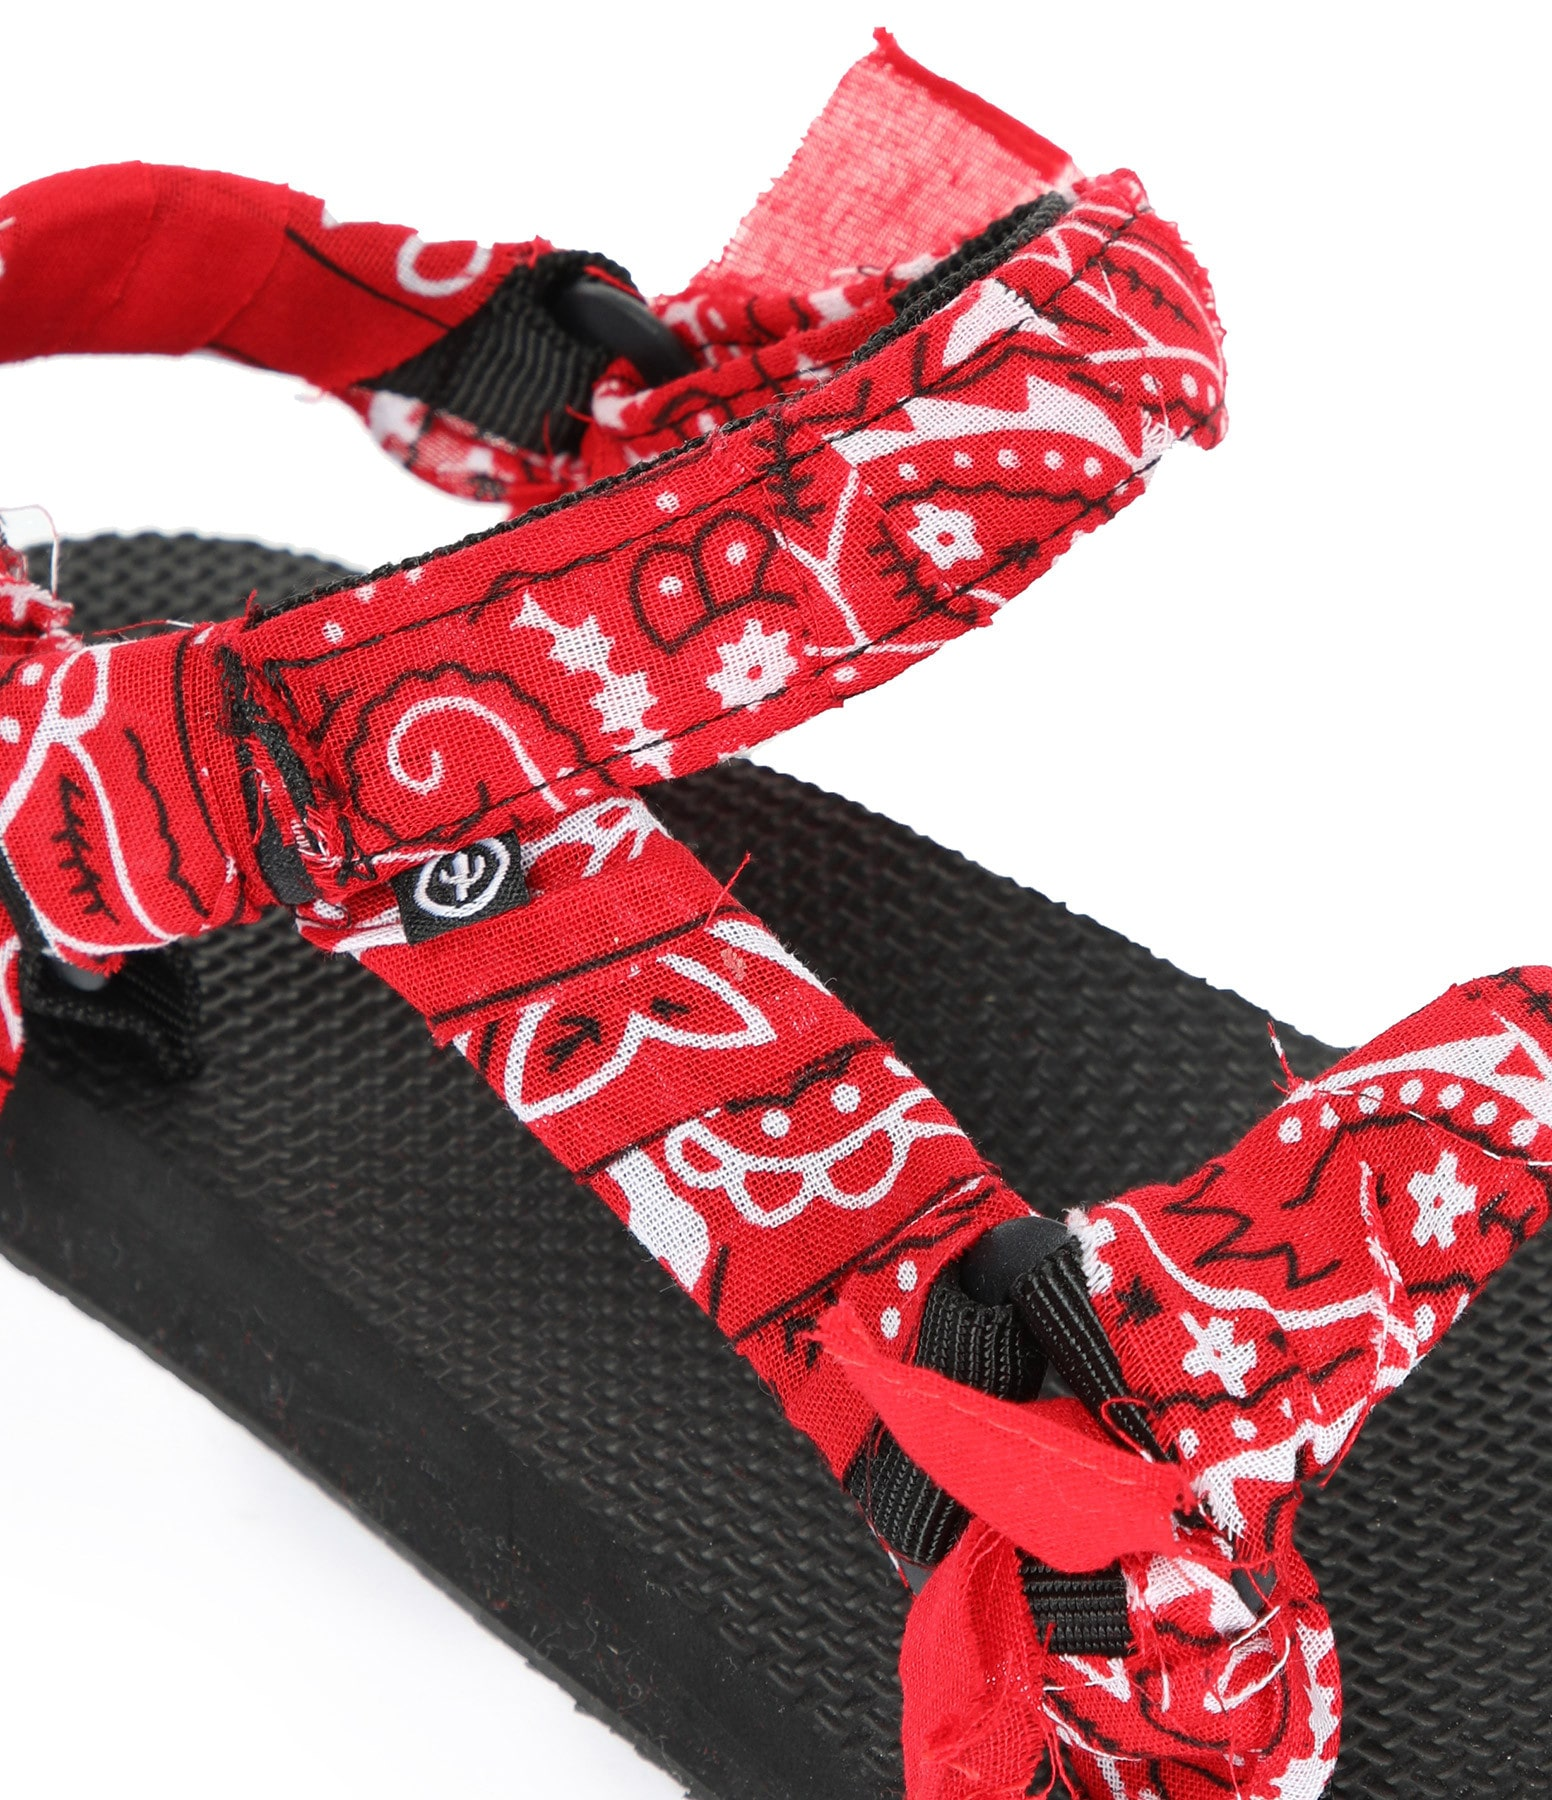 ARIZONA LOVE - Sandales Arizona Bandana Rouge